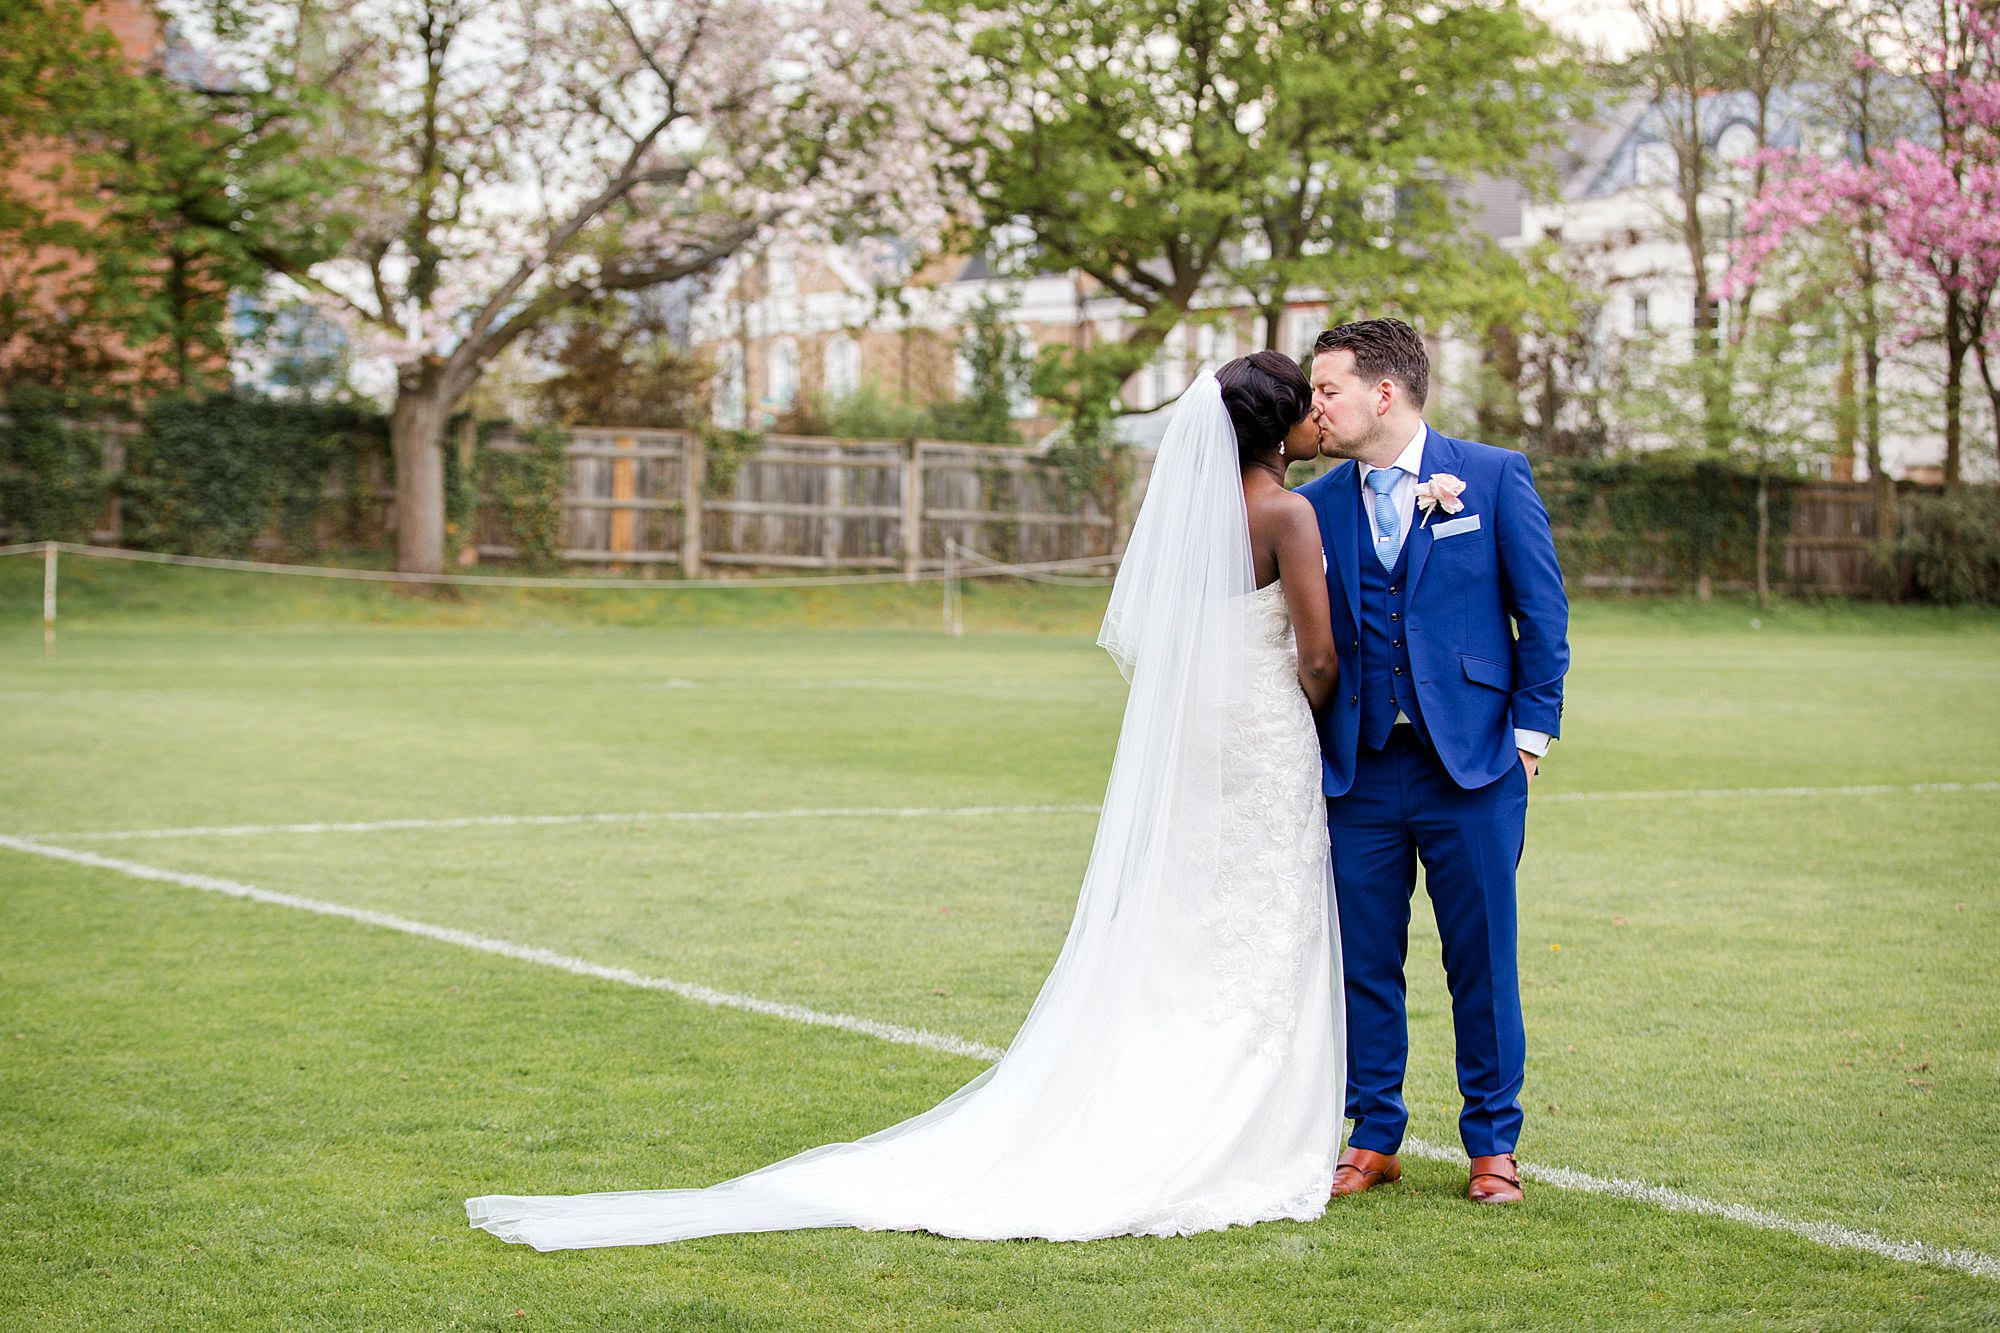 Bank of England Sports Centre wedding groom and bride kiss on field